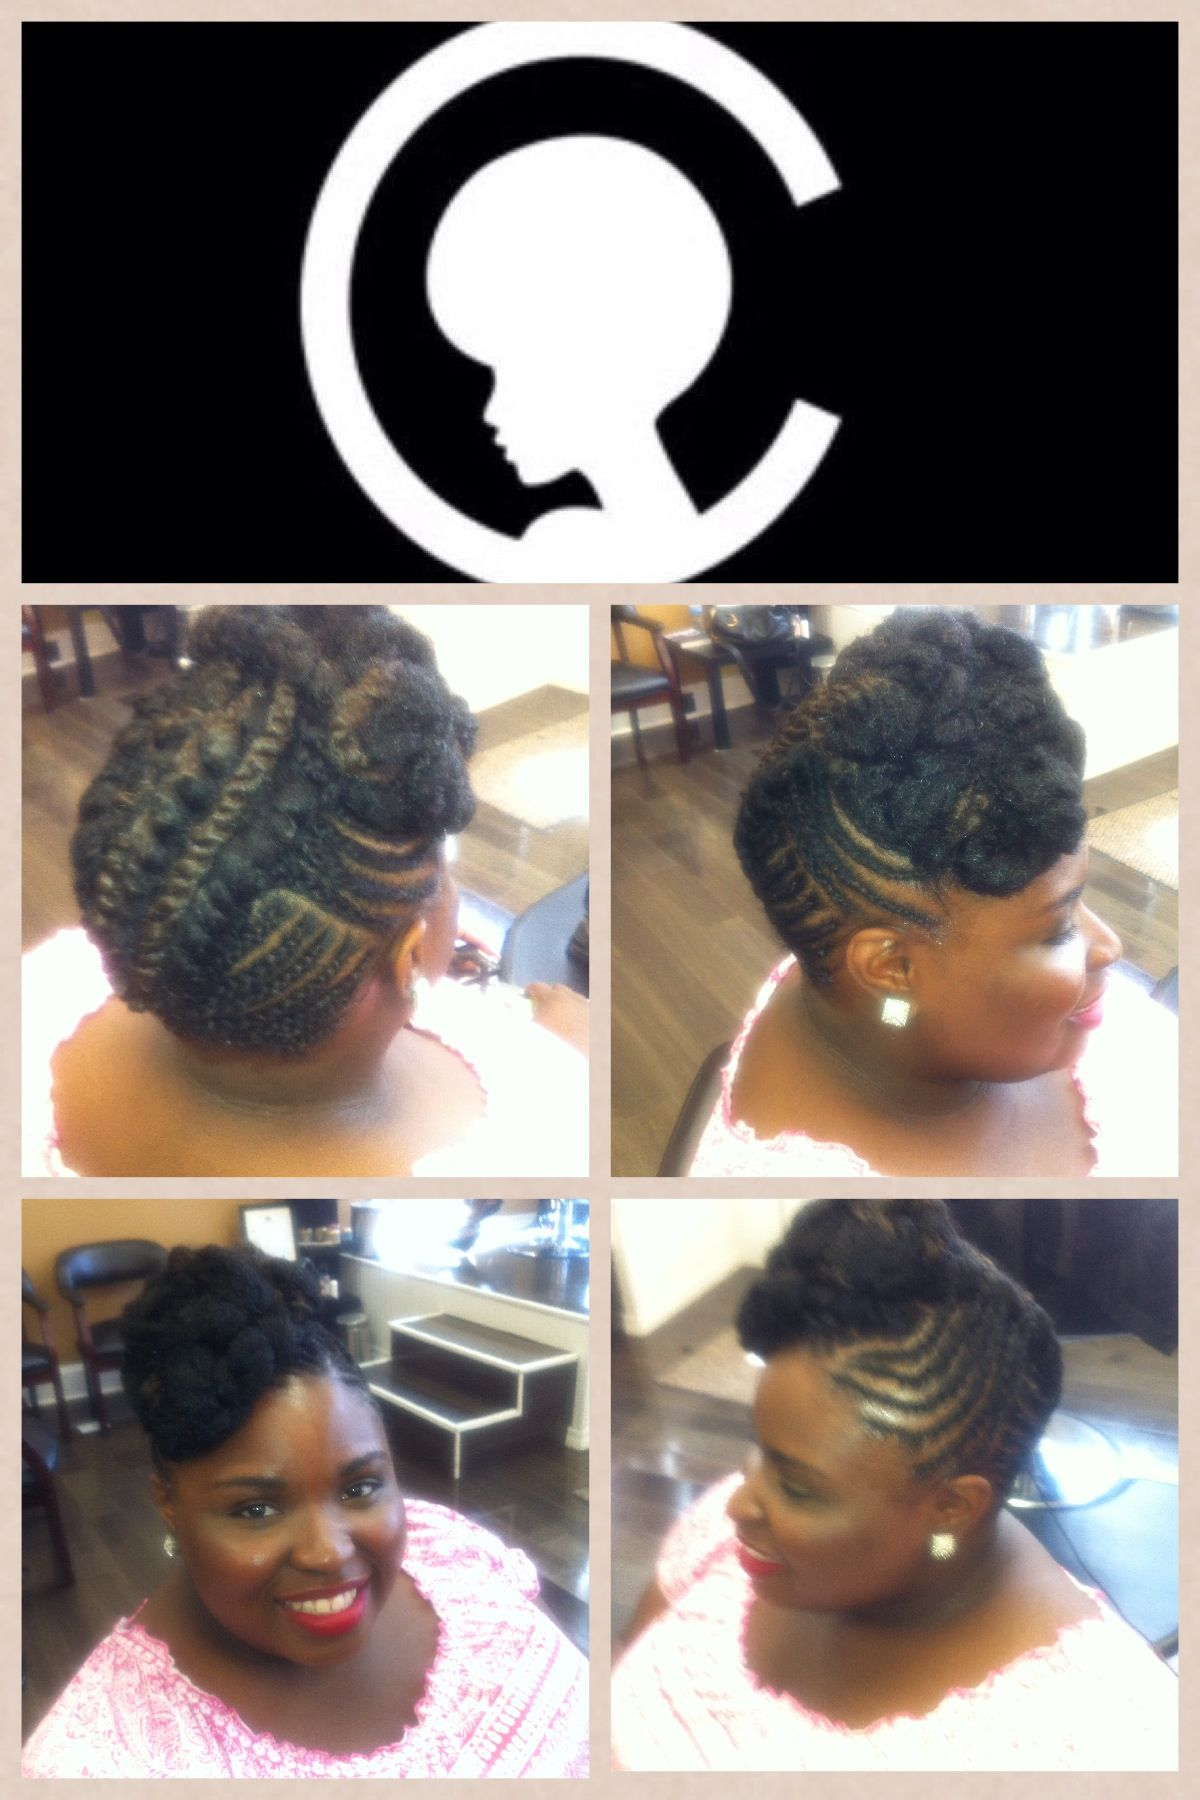 Weheartit cincinatural hair group pinterest